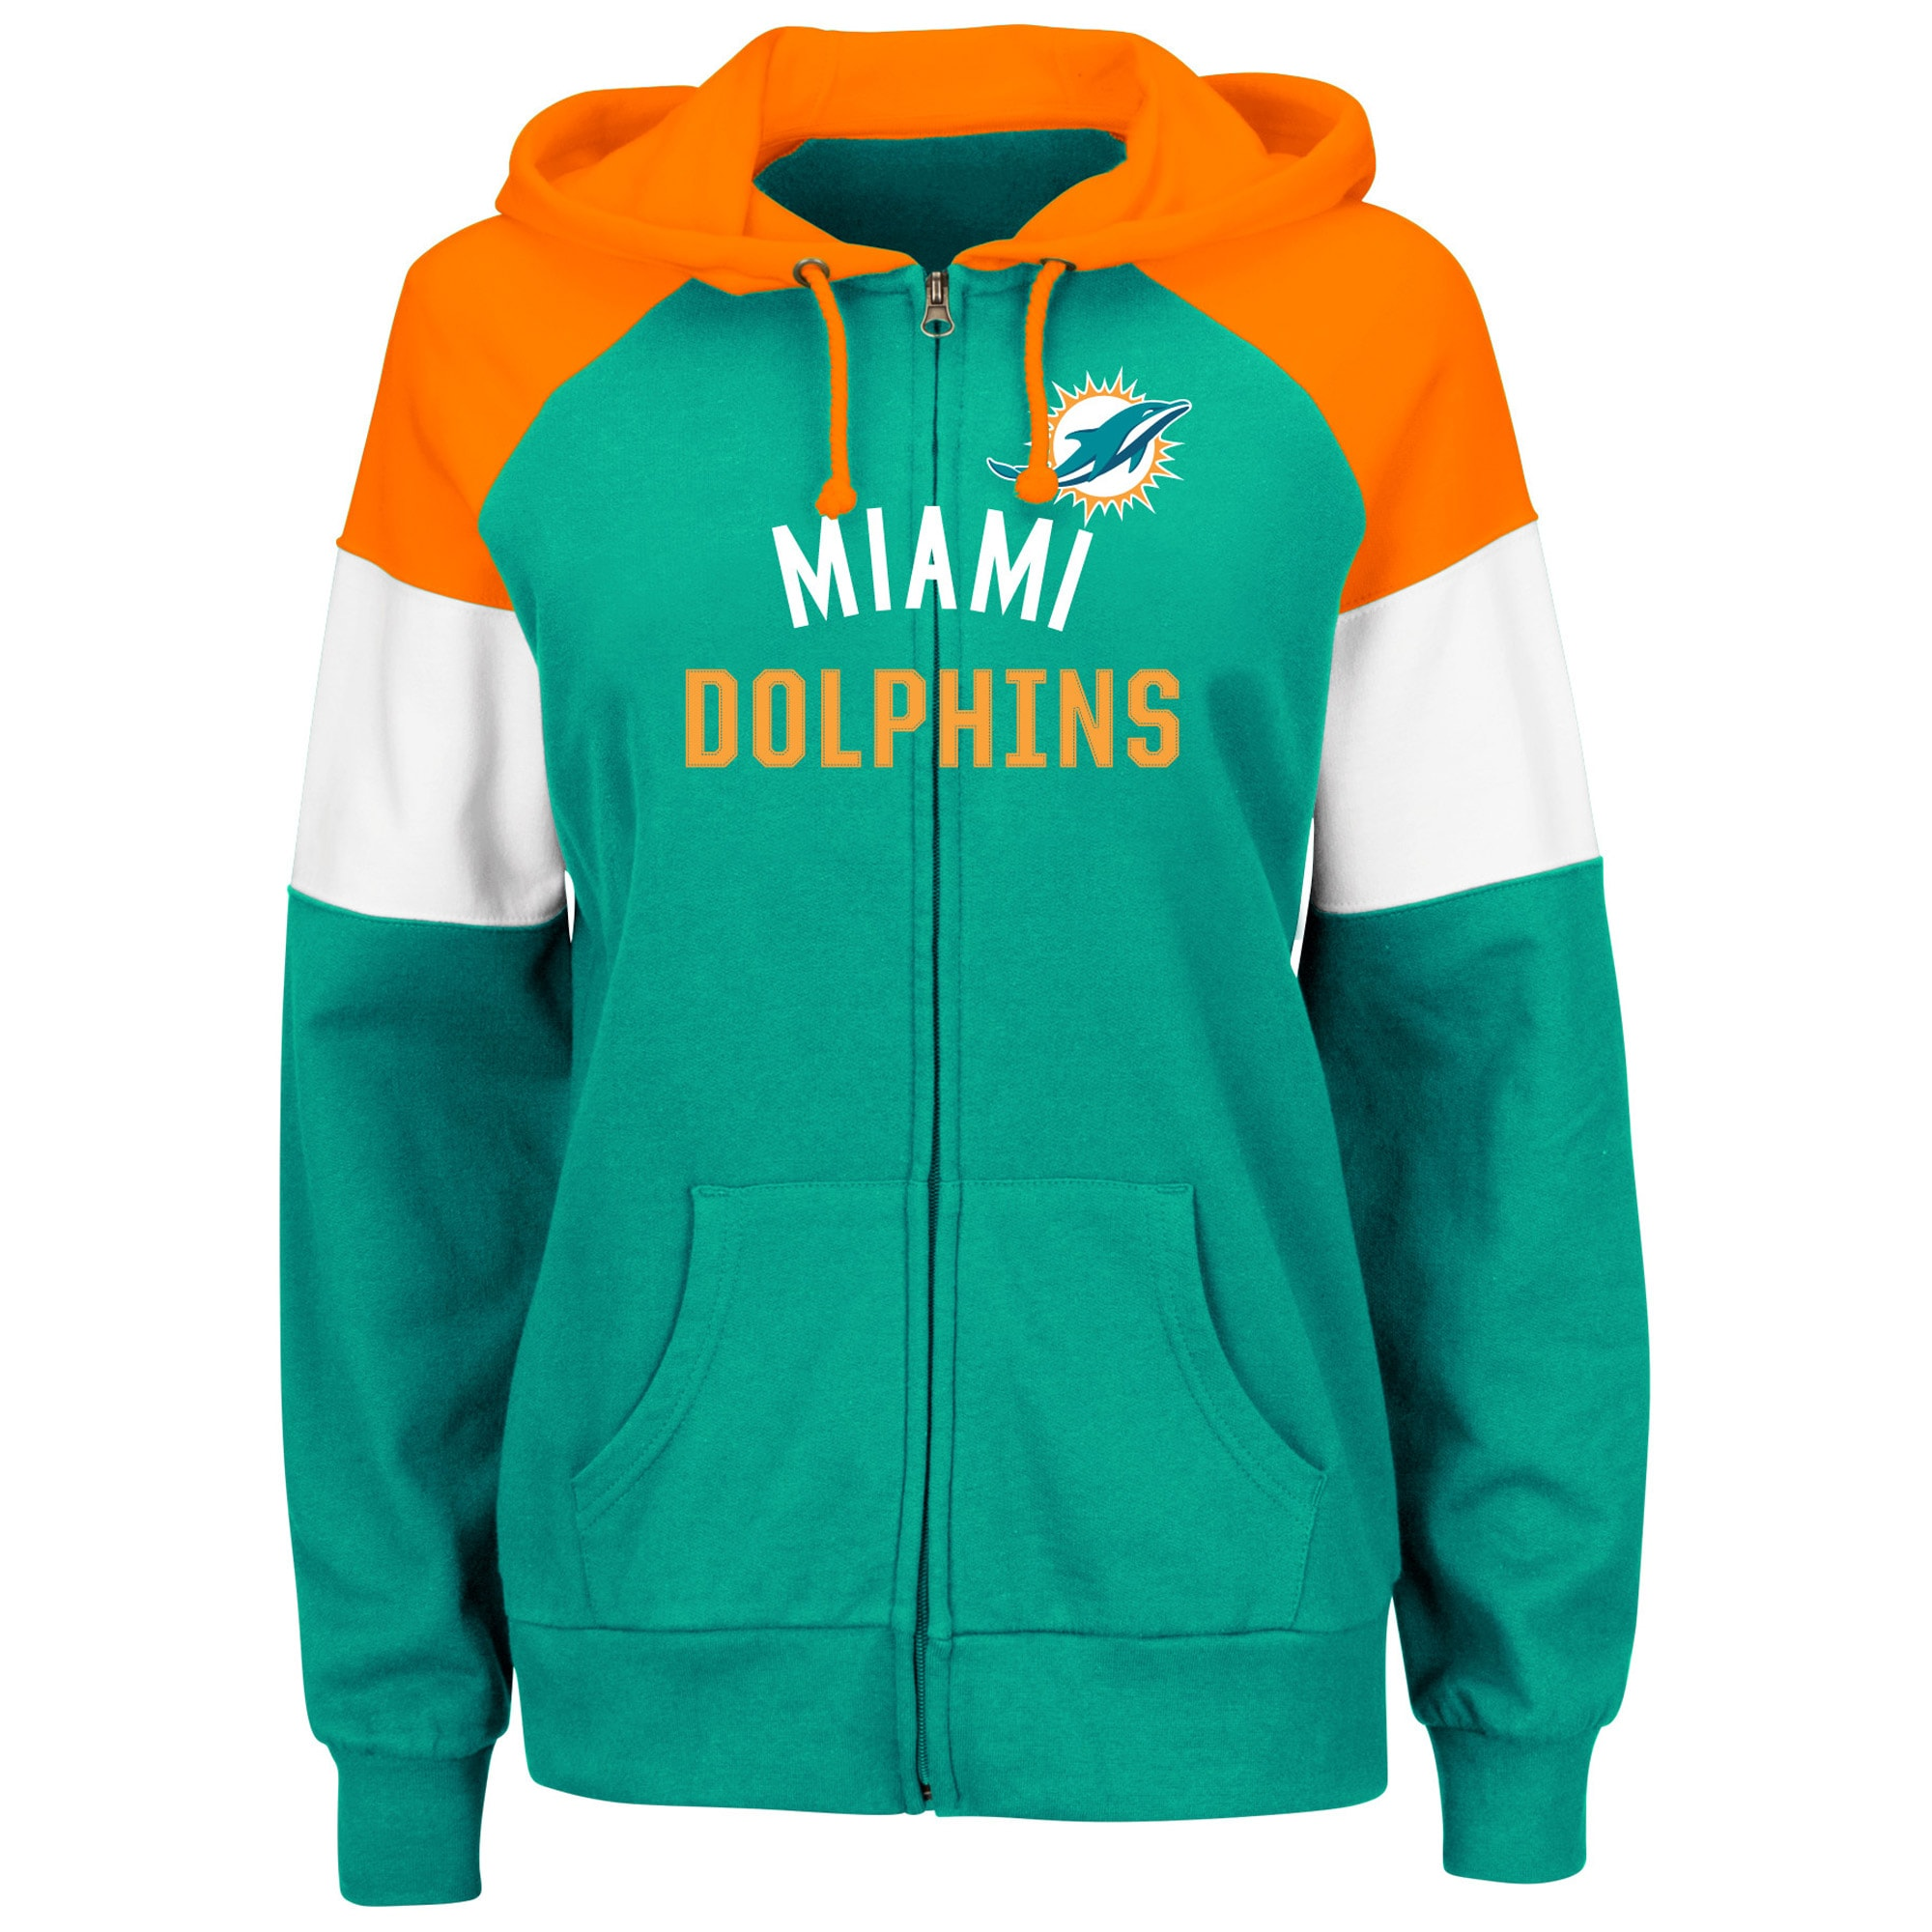 Miami Dolphins Majestic Women's Hot Route Full-Zip Hoodie - Aqua